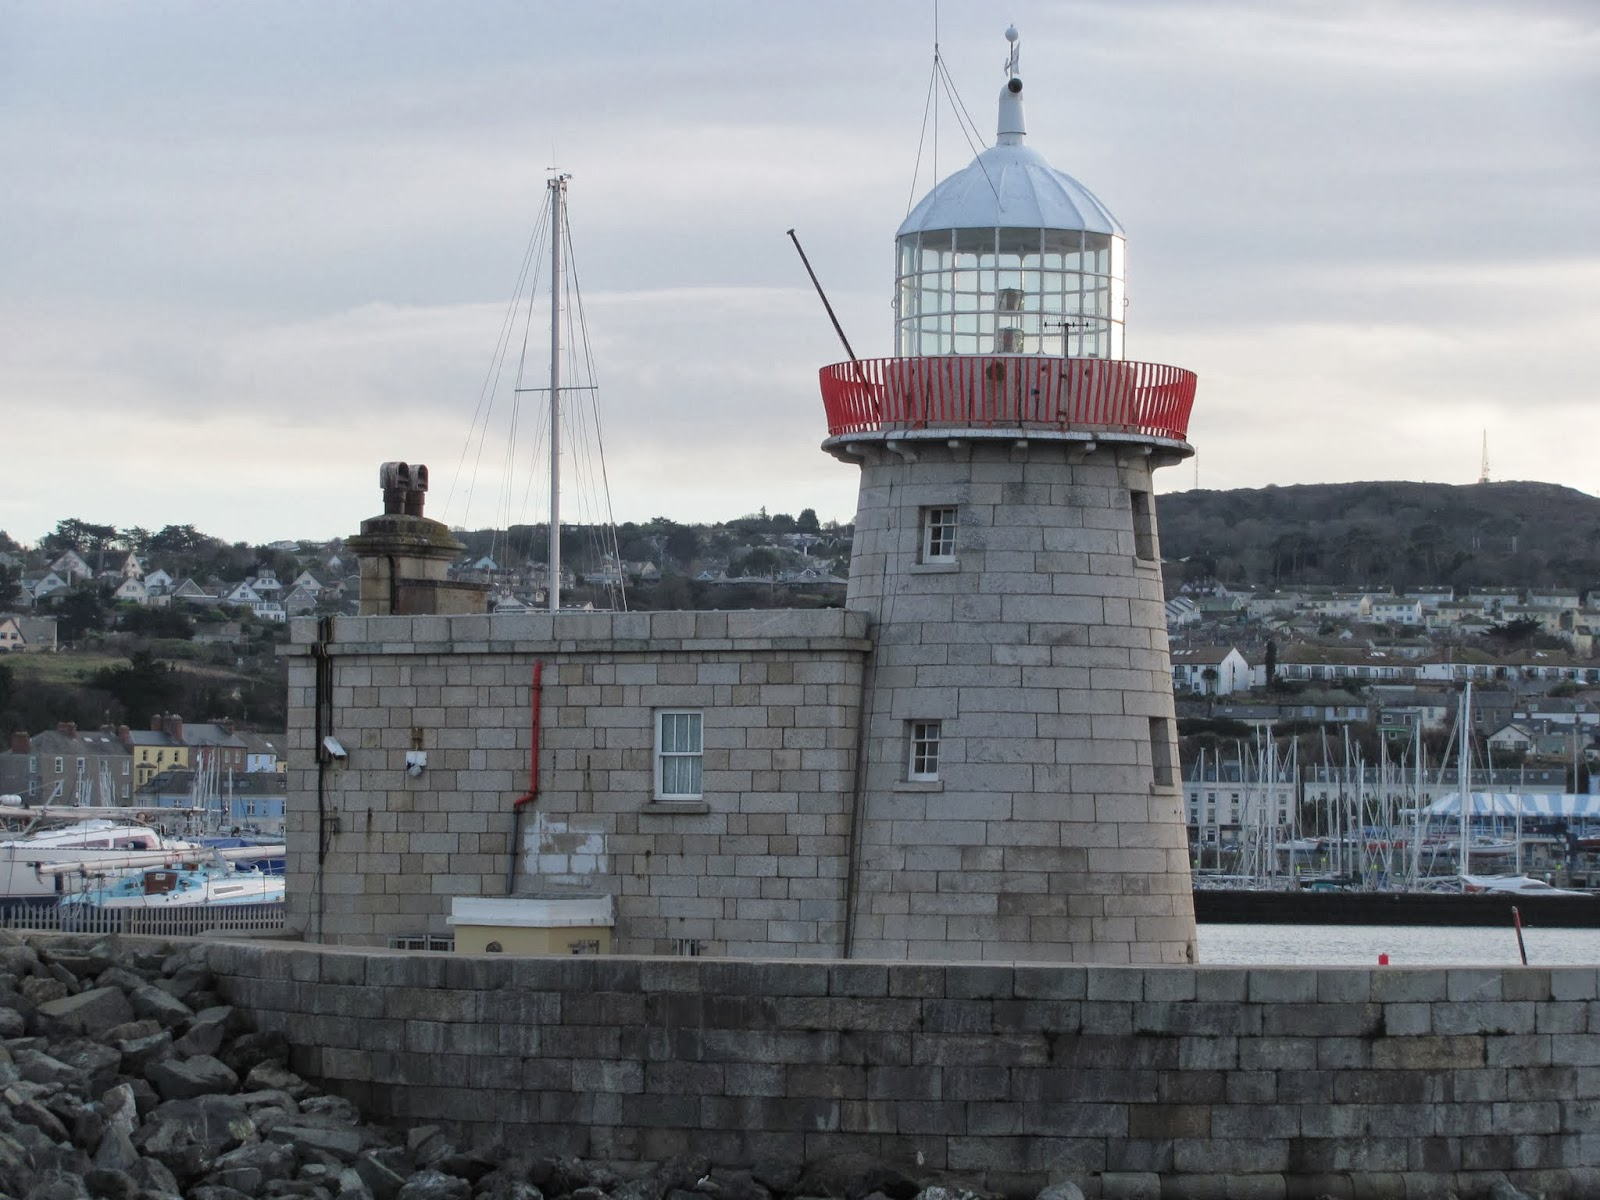 East Pier Lighthouse in Howth, Co. Dublin, Ireland